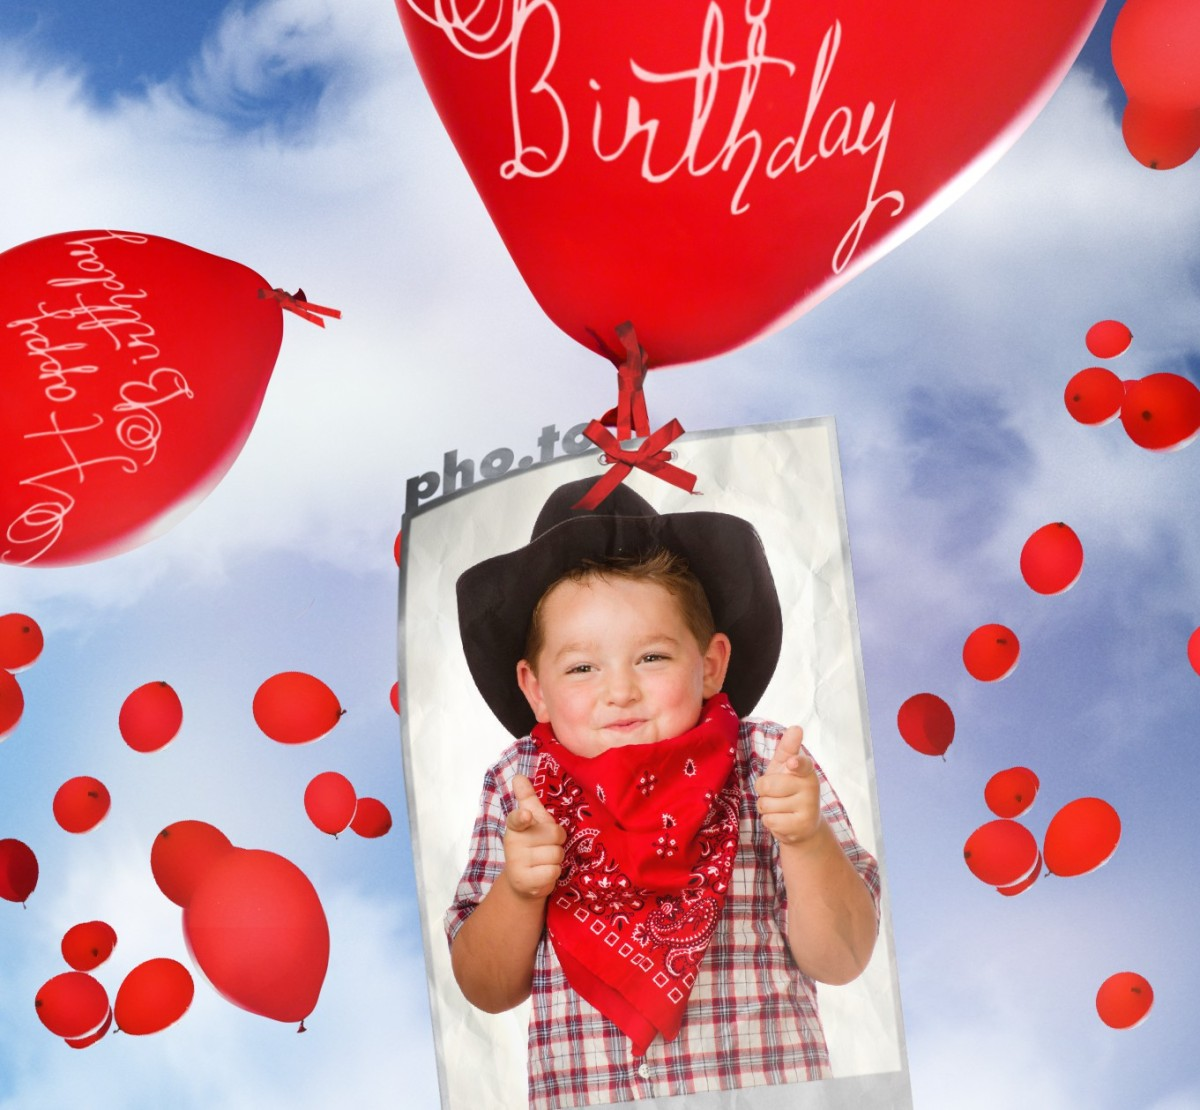 Birthday card with flying balloons Printable photo template – Online Birthday Greeting Card Maker